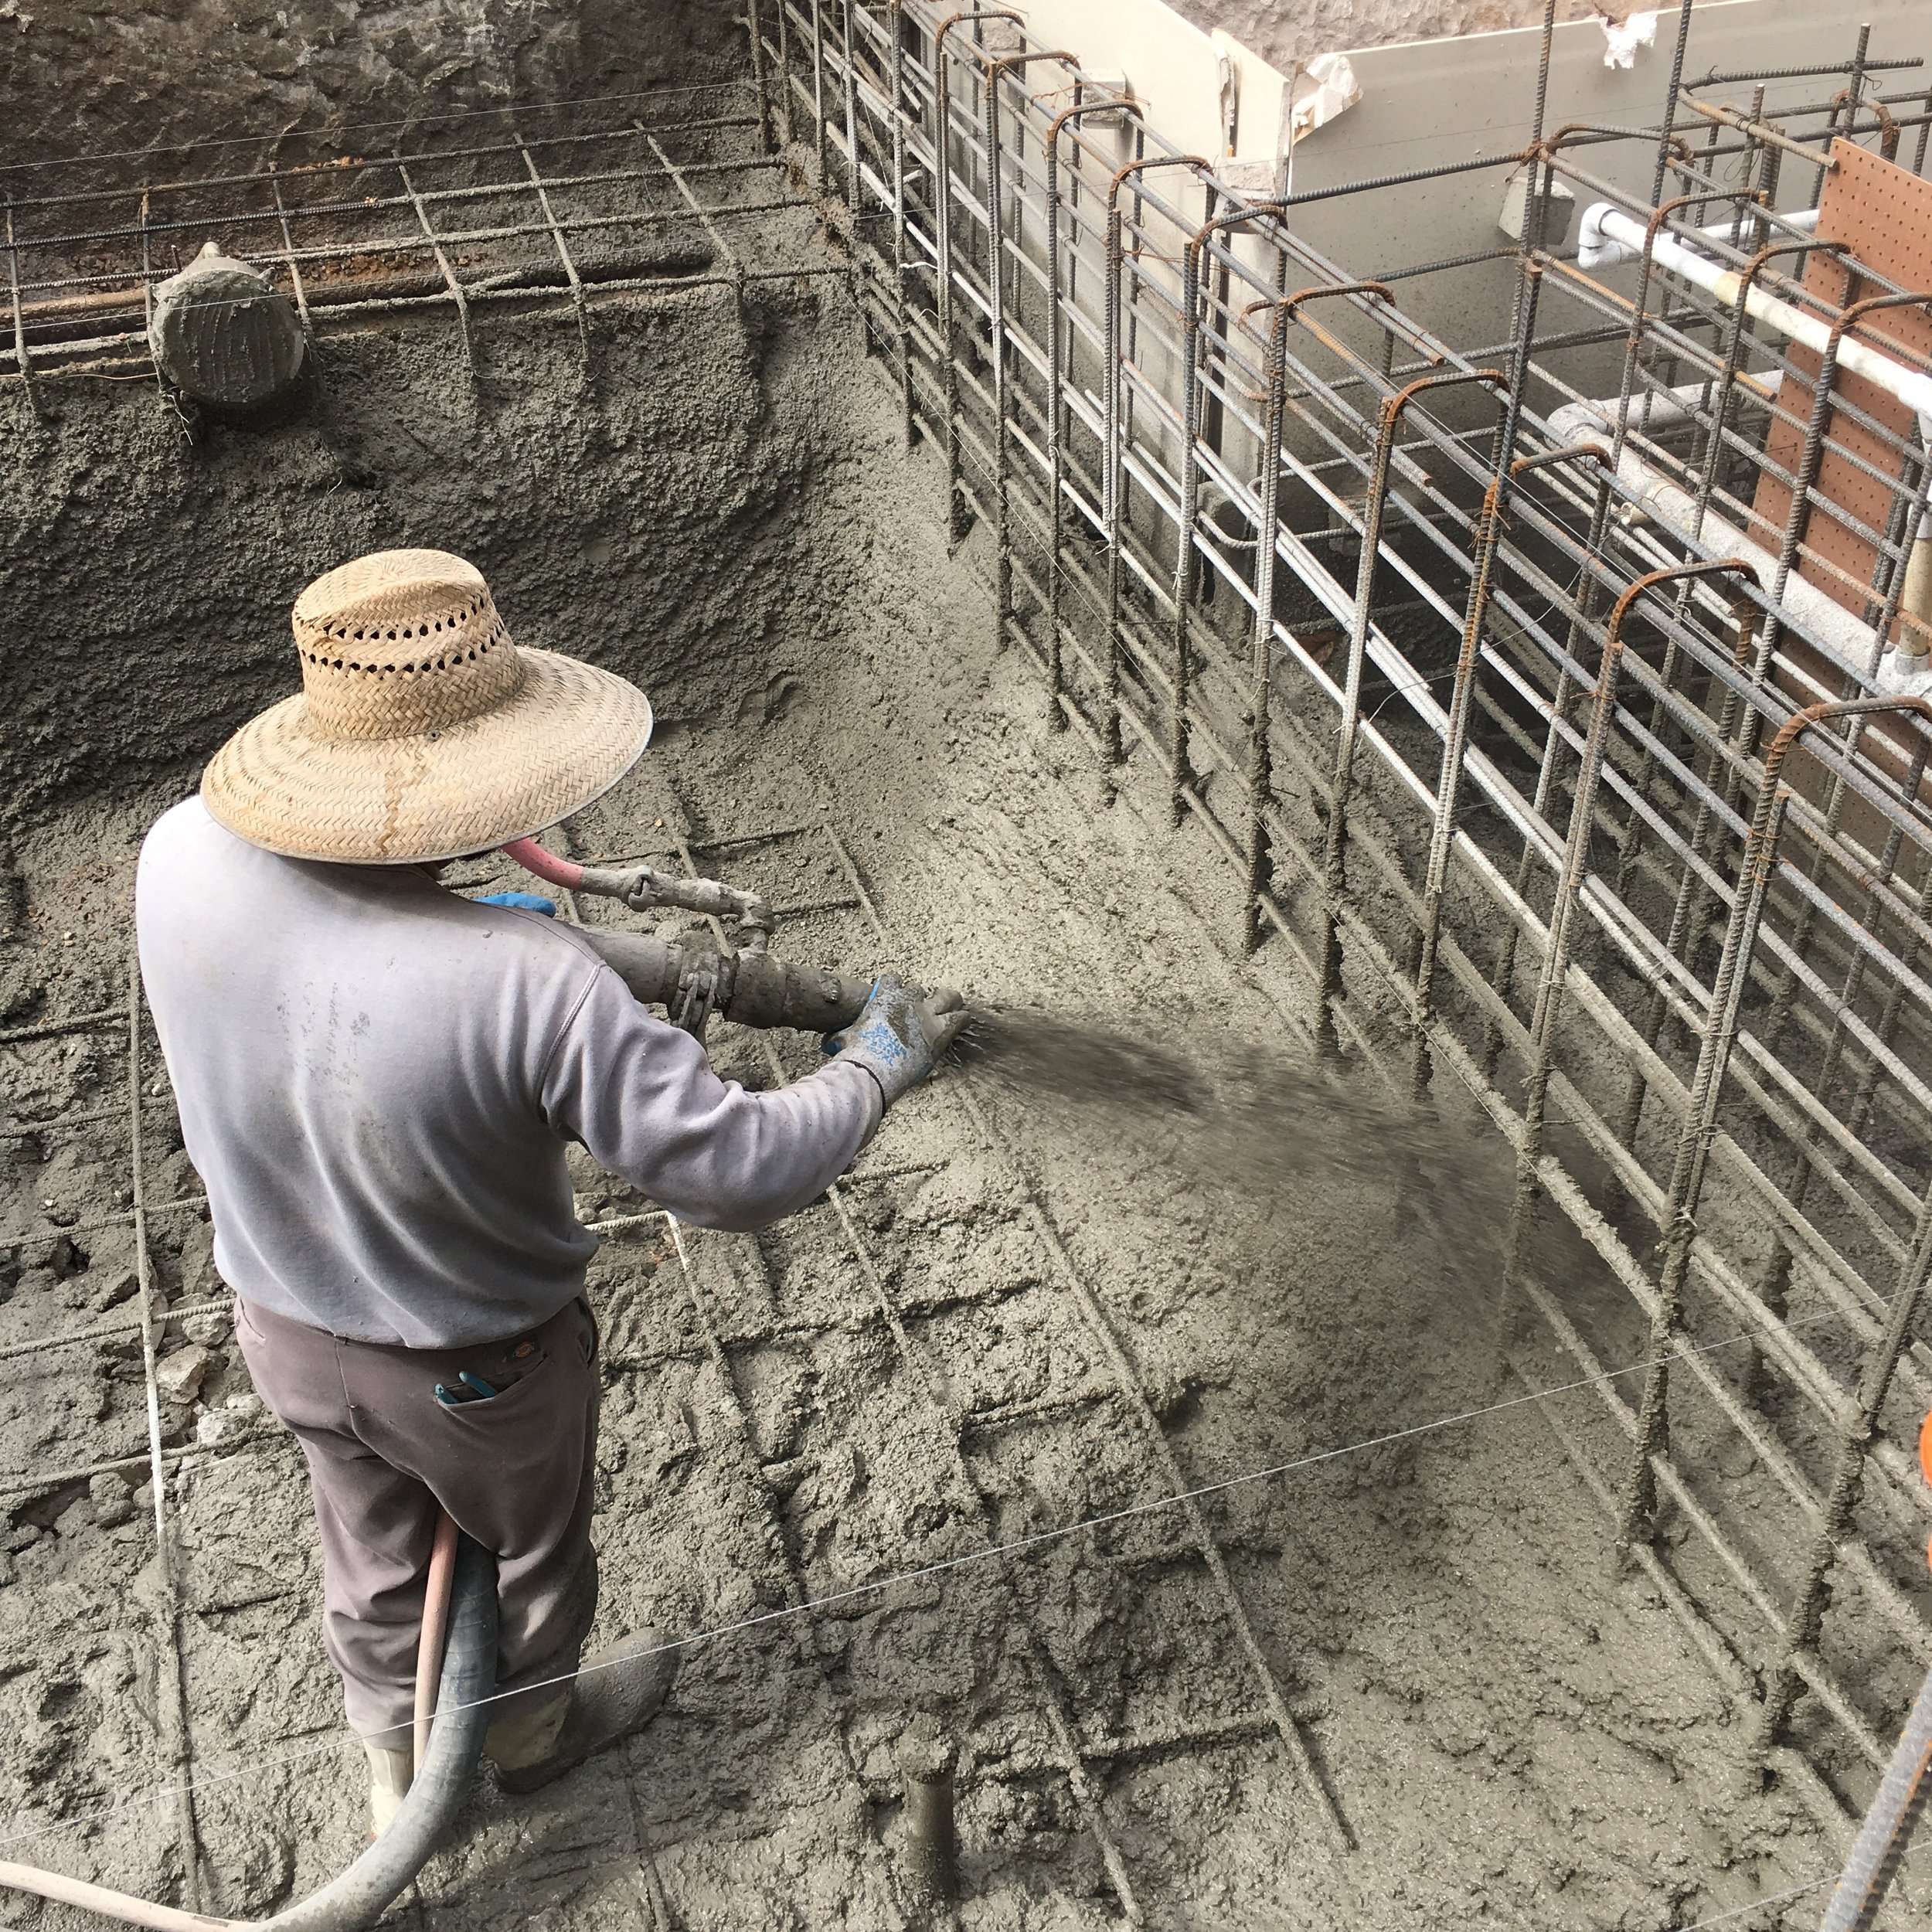 This is the typical procedure when constructing a shotcrete pool. Shotcrete refers to the premixed, wet concrete that gets shot out of a hose.